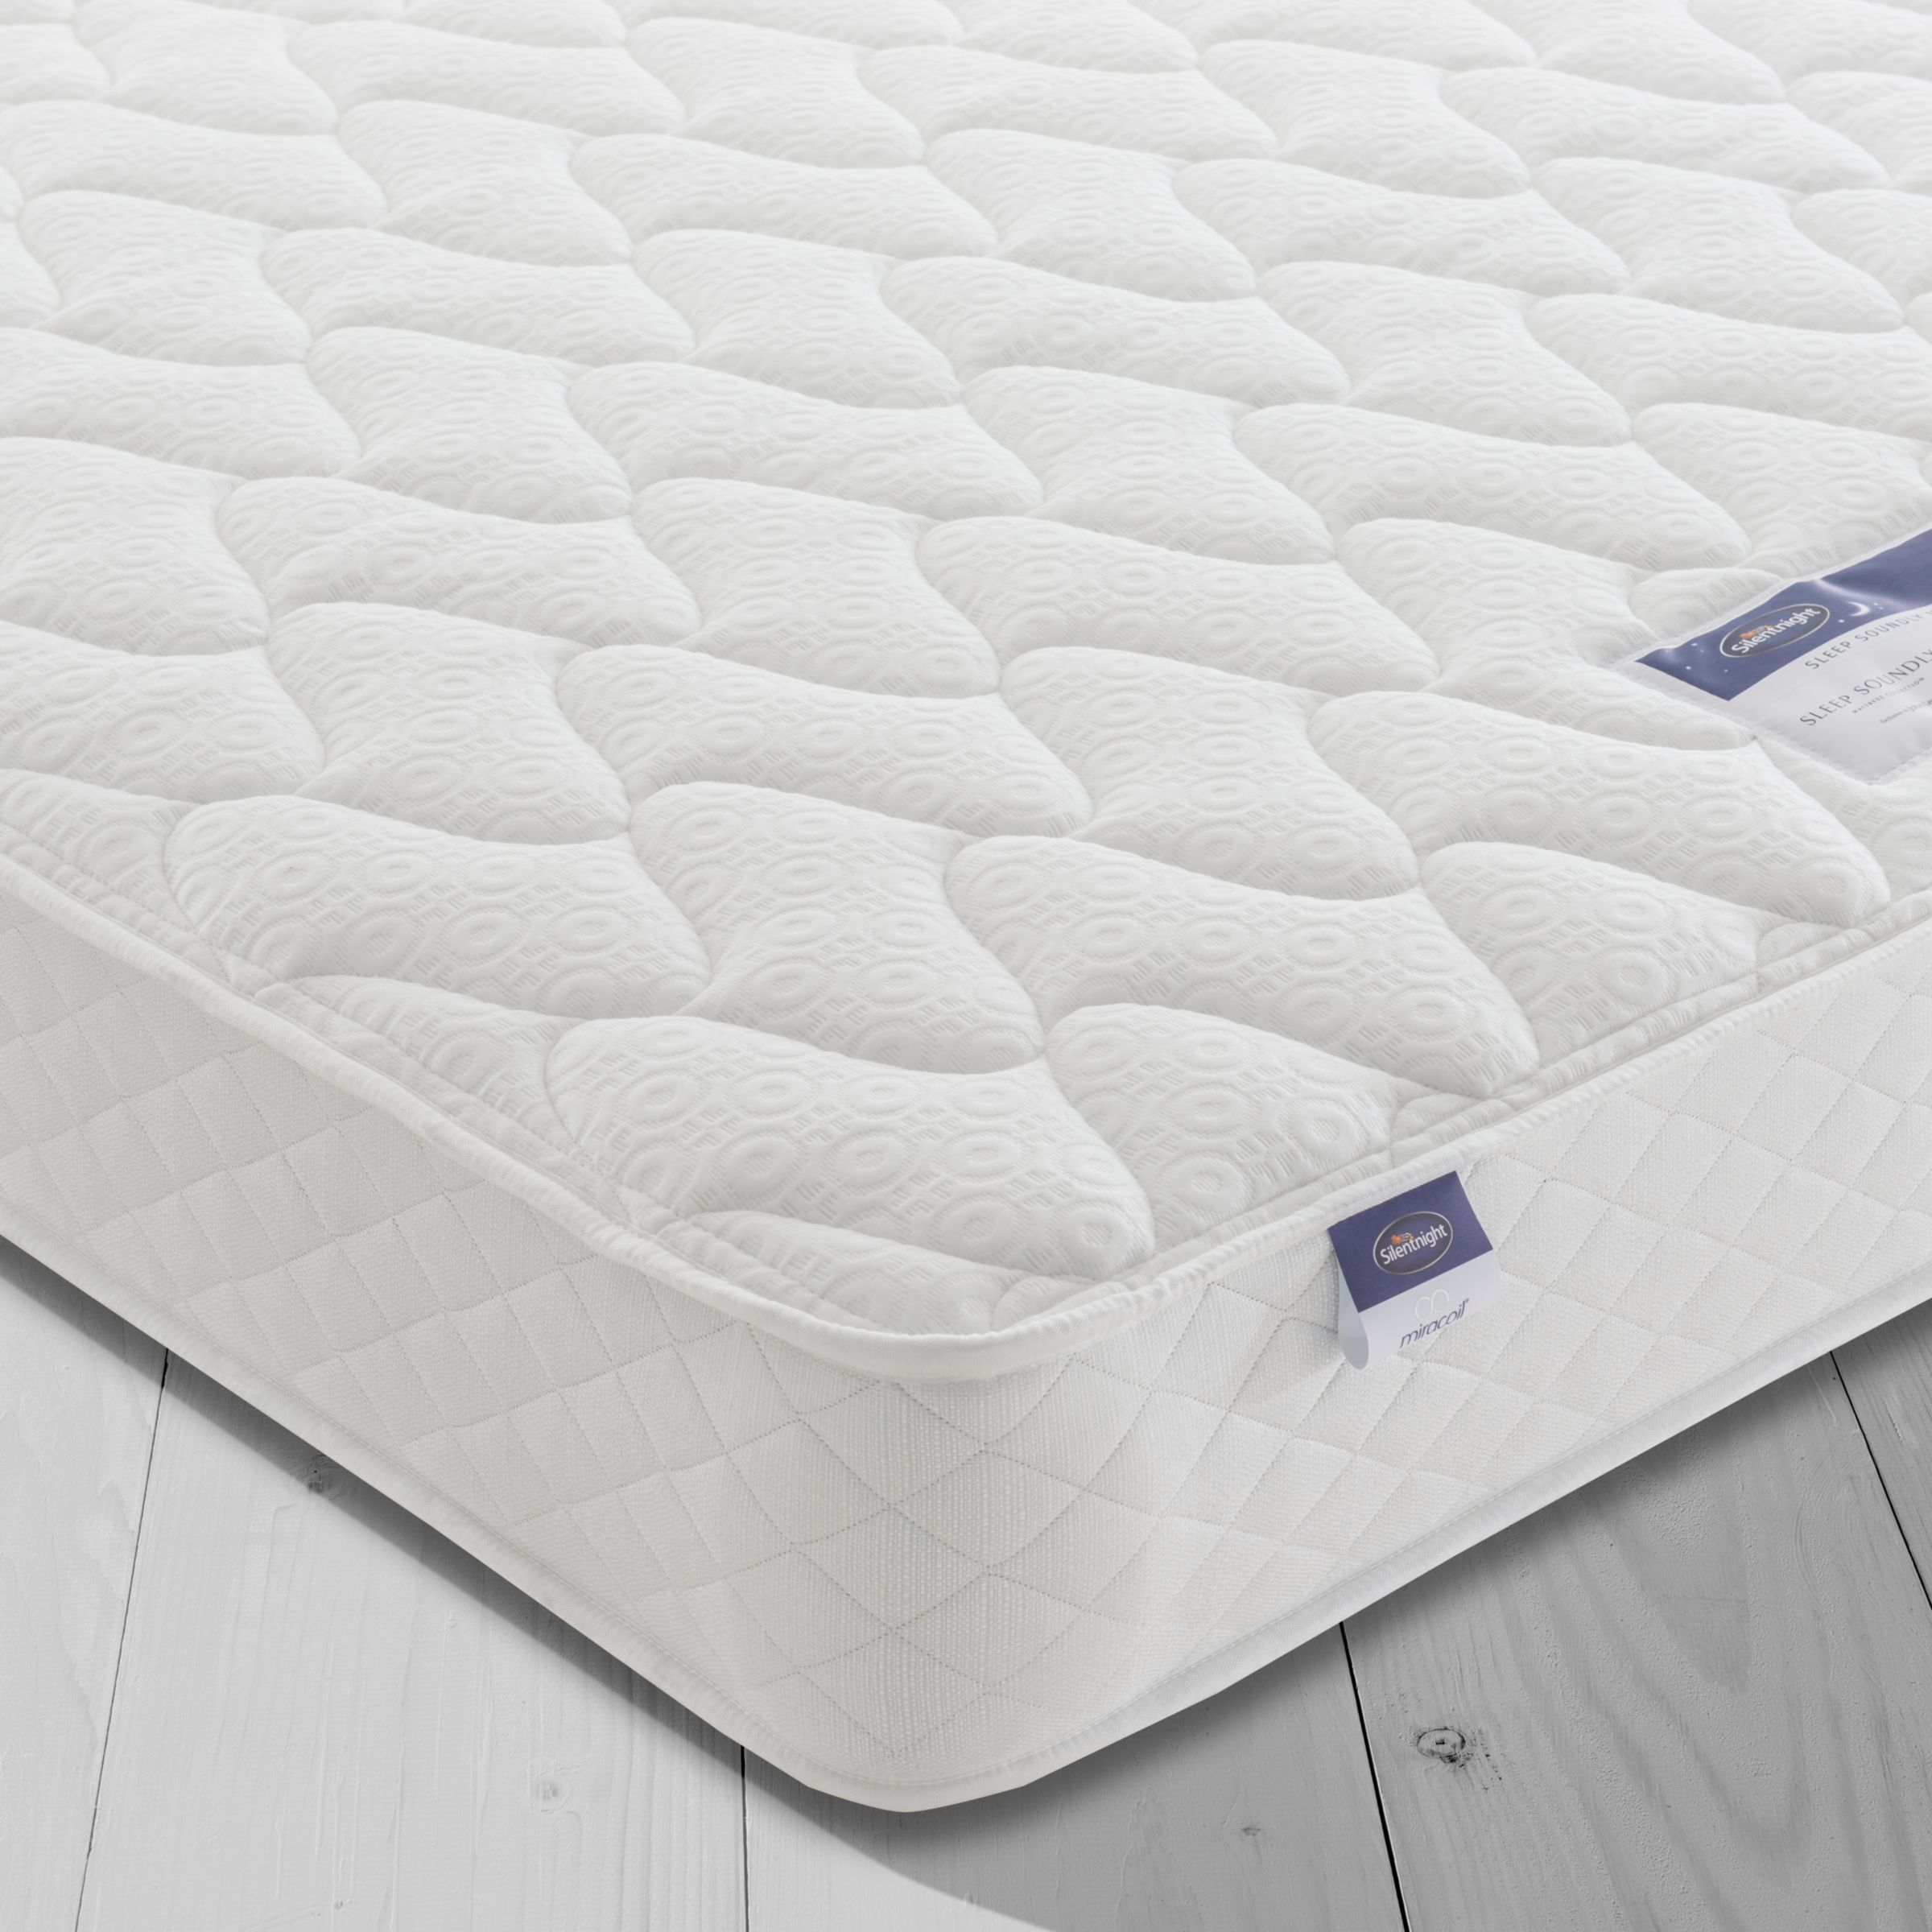 warren bed tips and a buying online top mattress buy home first your evans for